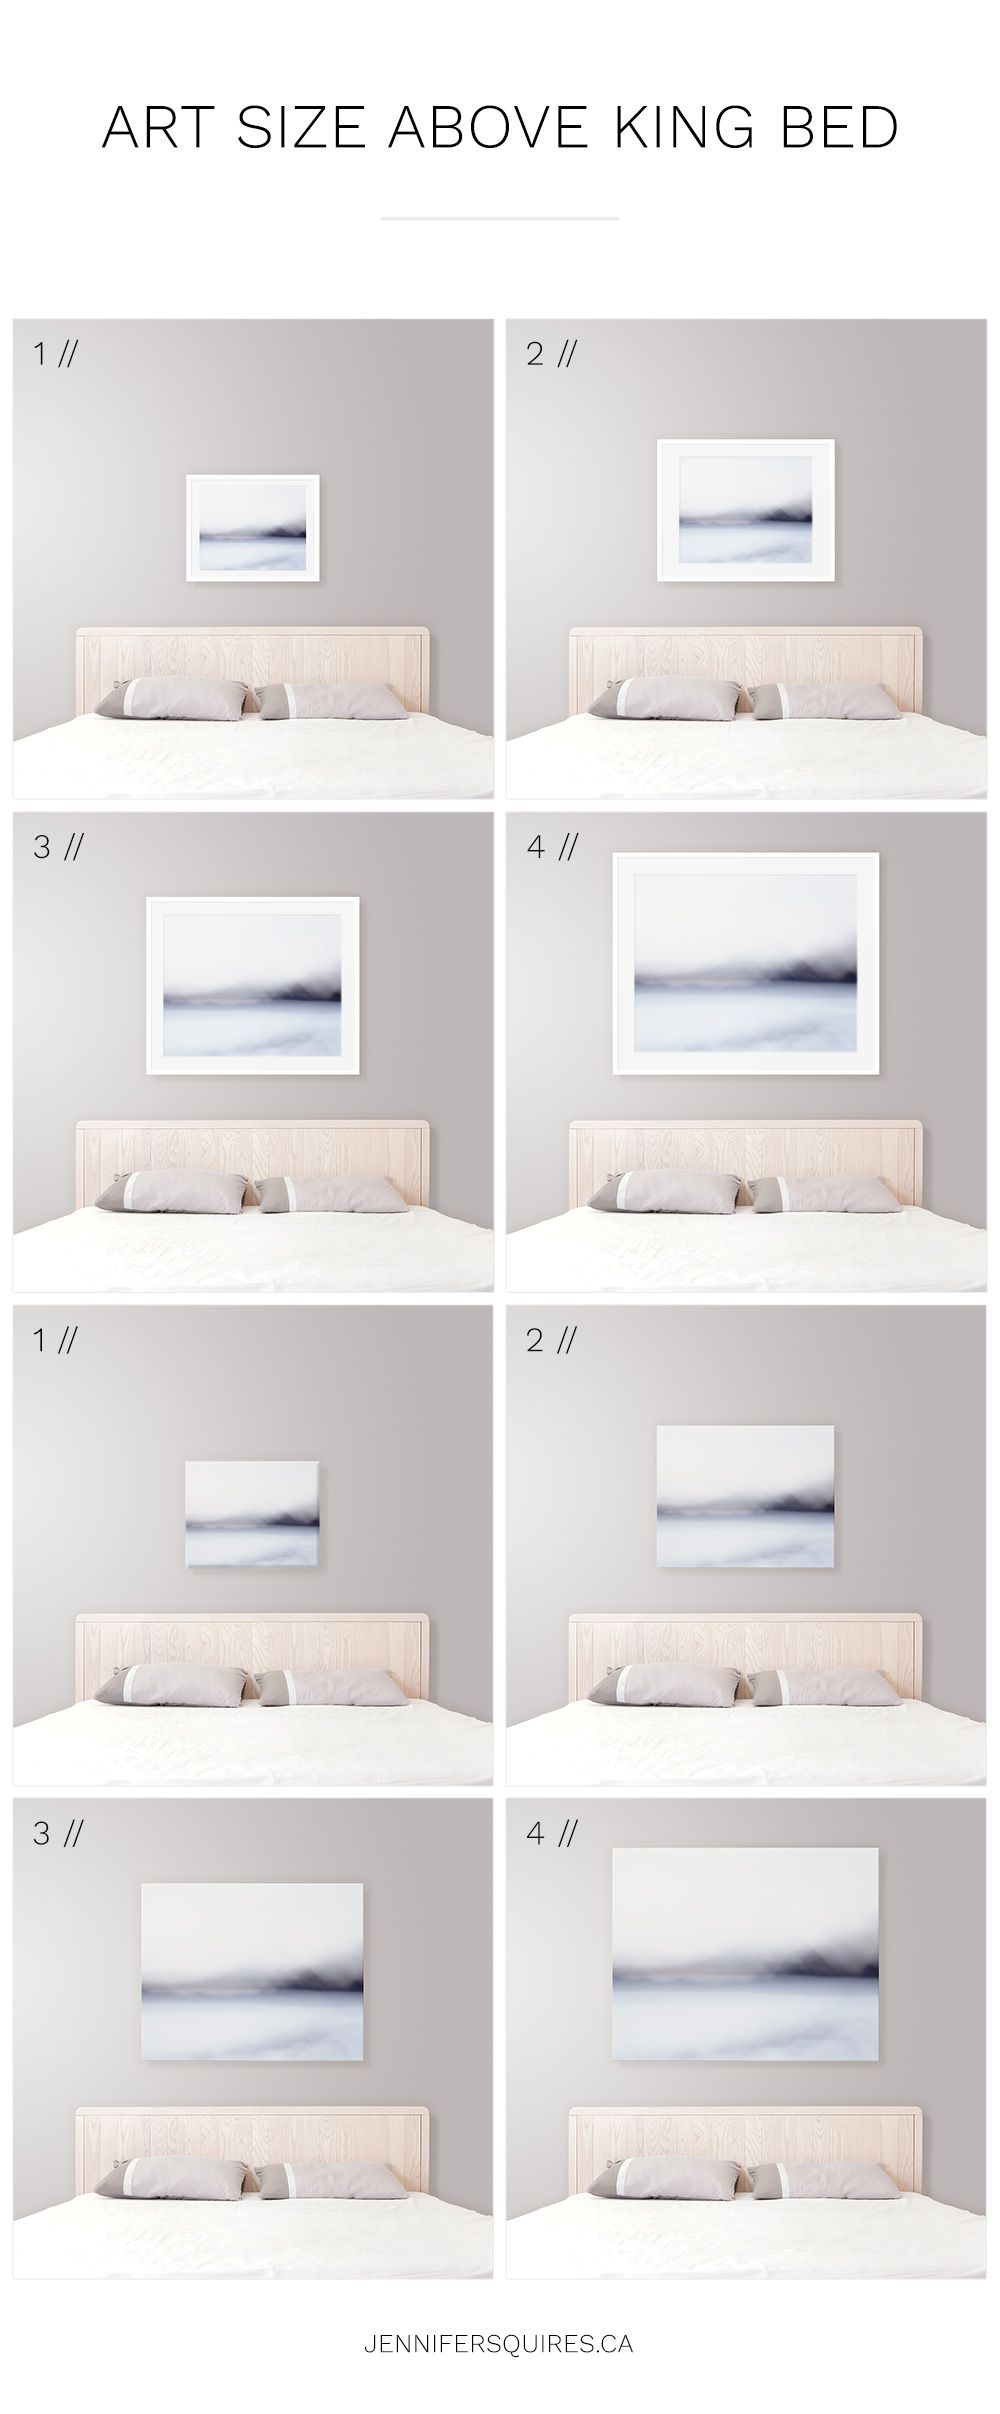 Ideal Art Size Above King Bed Modern Coastal Bedroom Decor Tips Wall